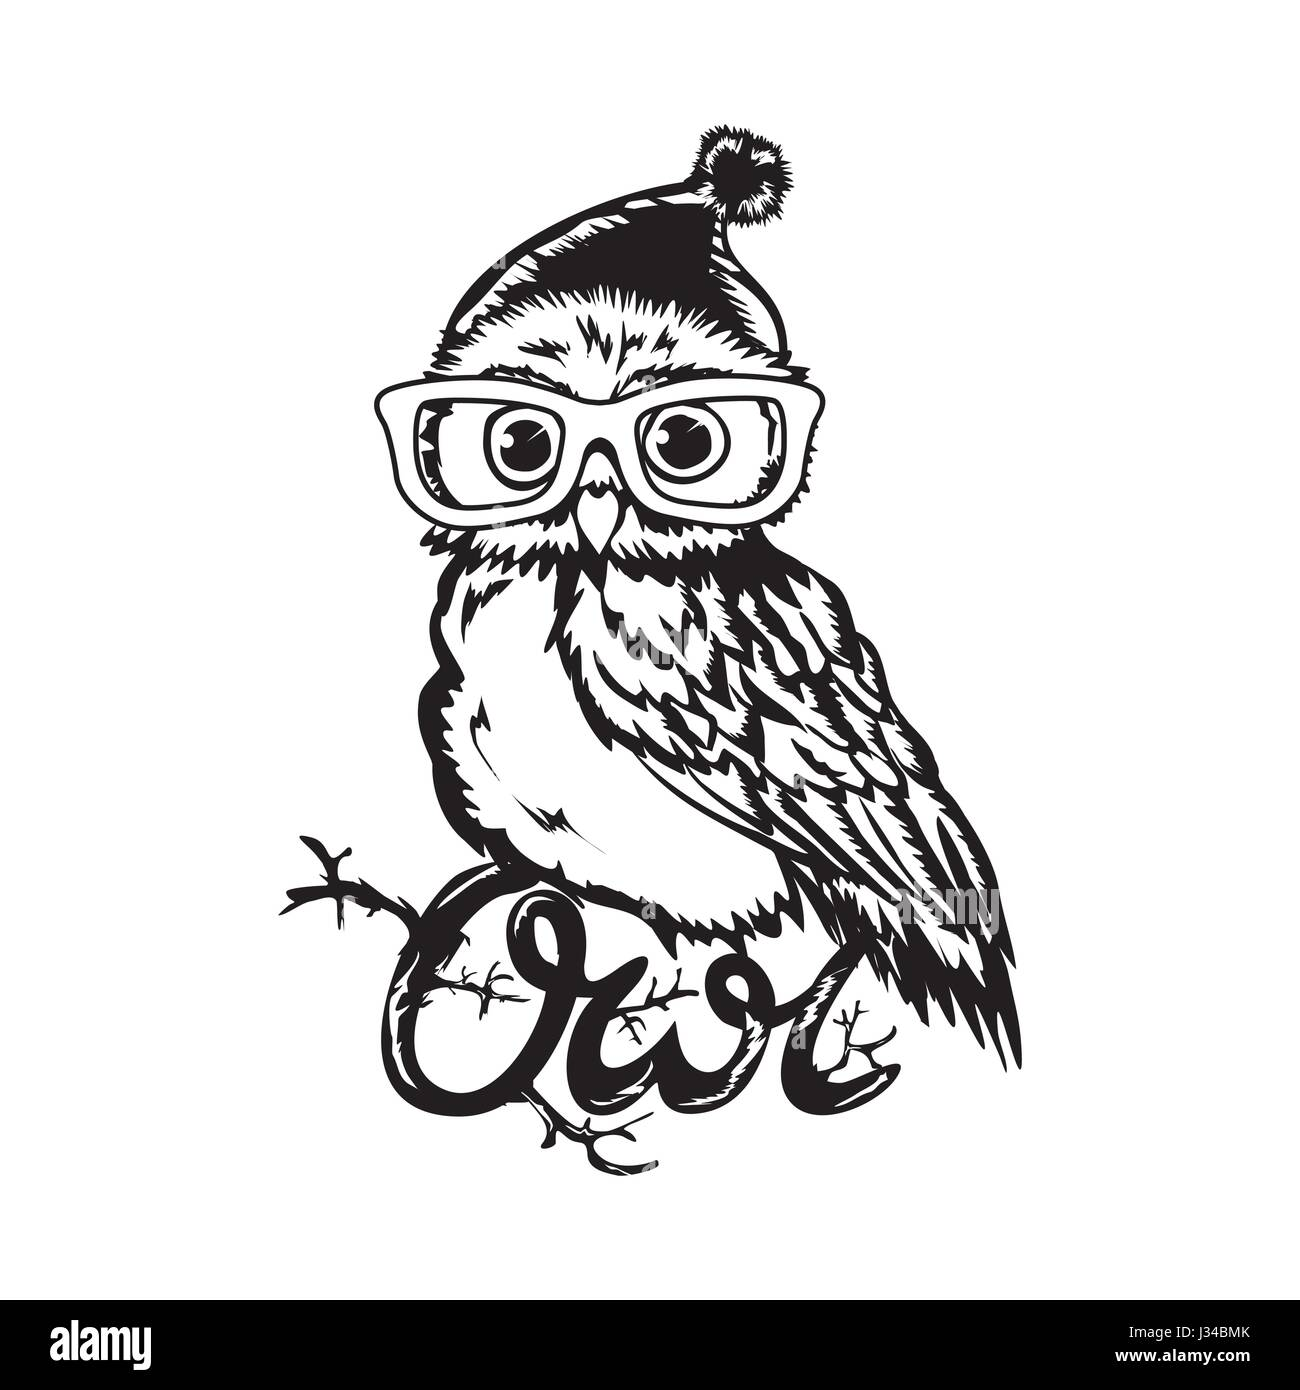 Wise owl cartoon black and white